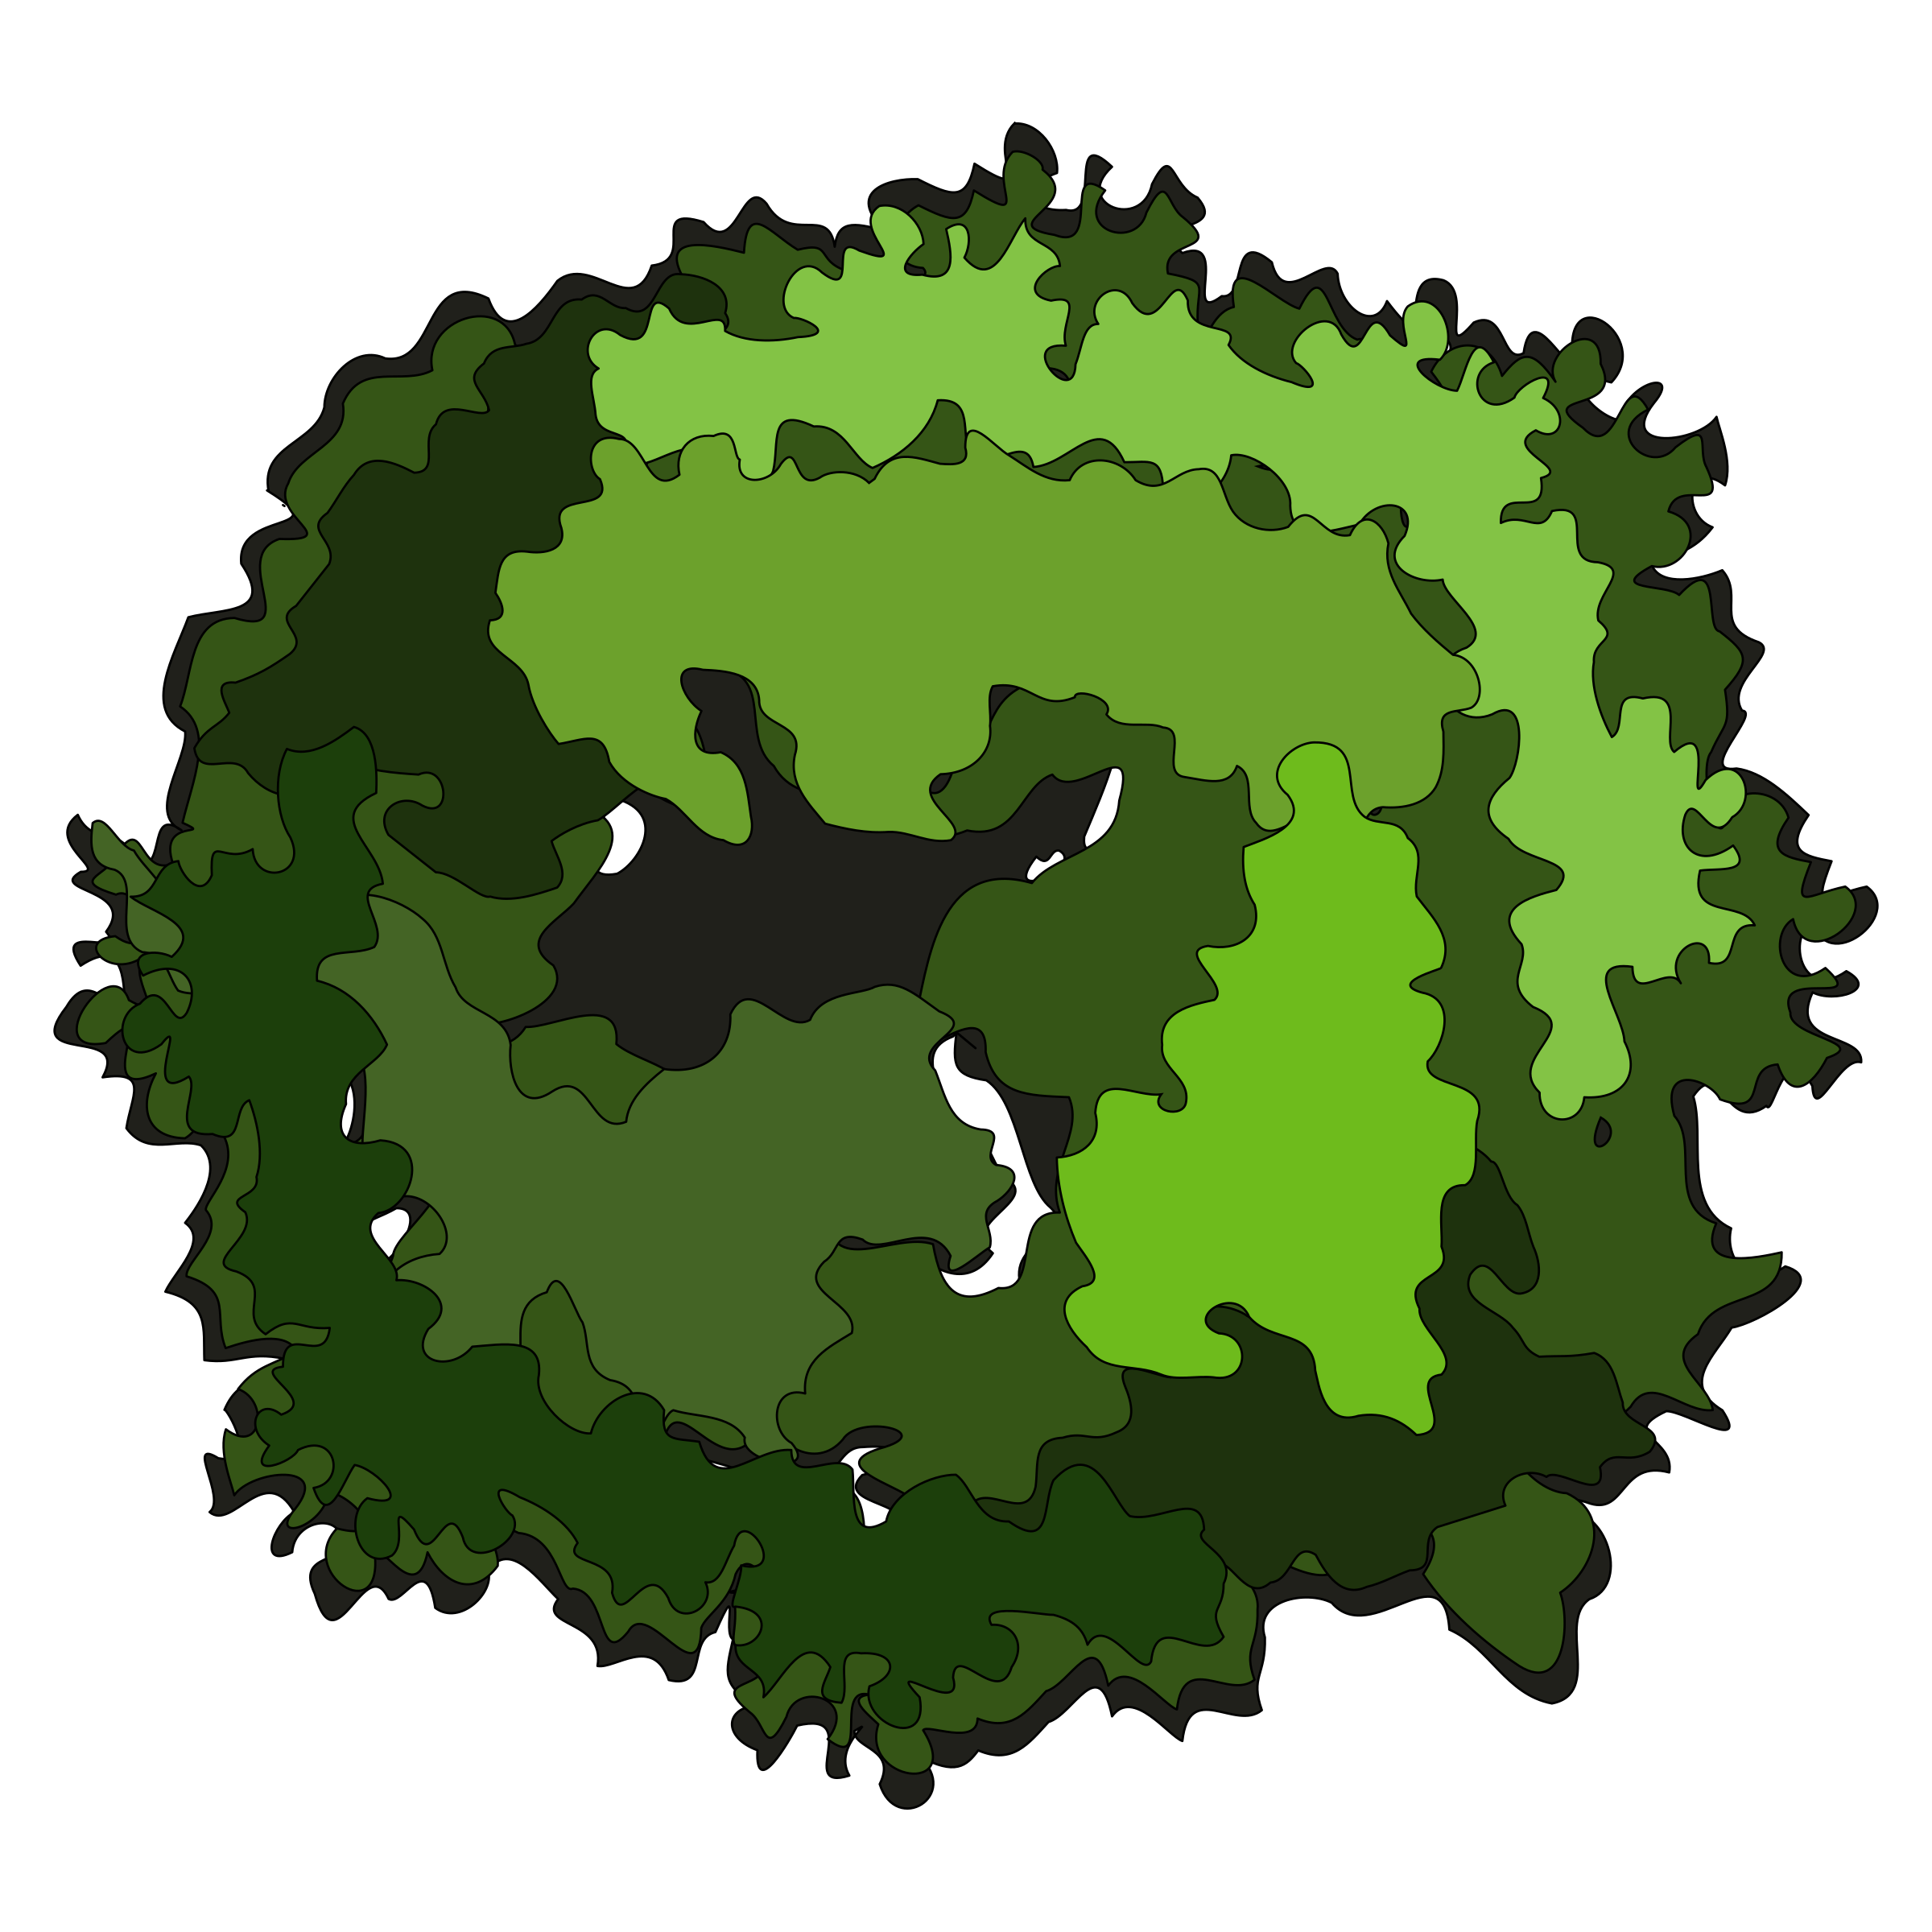 Free Trees Png Top View, Download Free Clip Art, Free Clip.